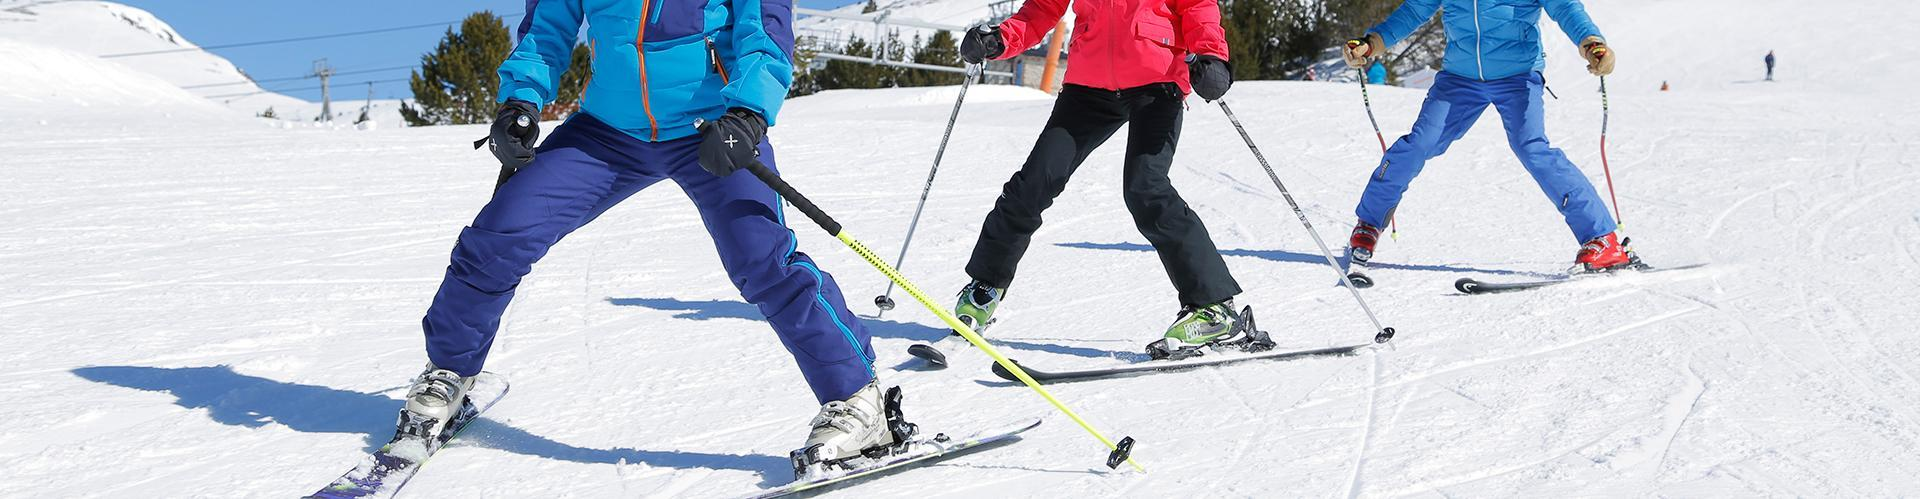 Beginner ski holidays